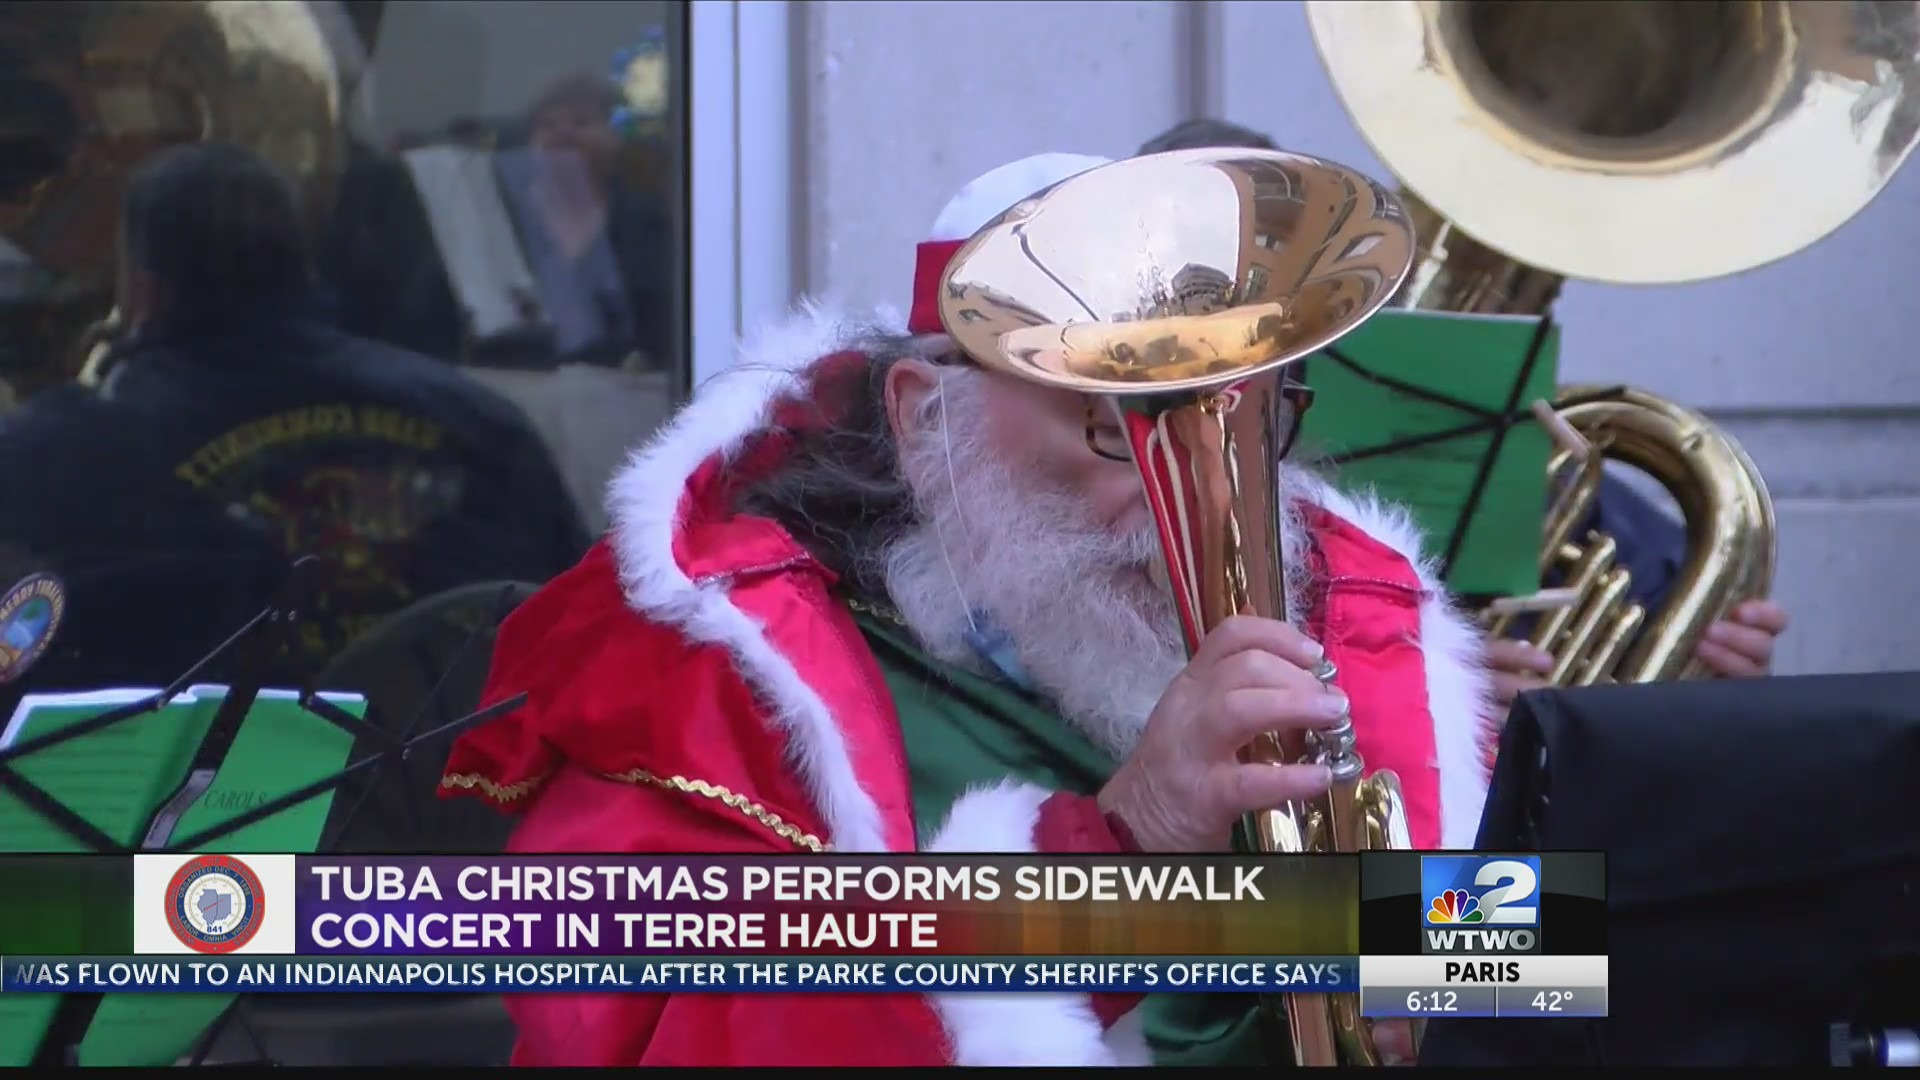 Musicians spread holiday cheer with a 'Tuba Christmas